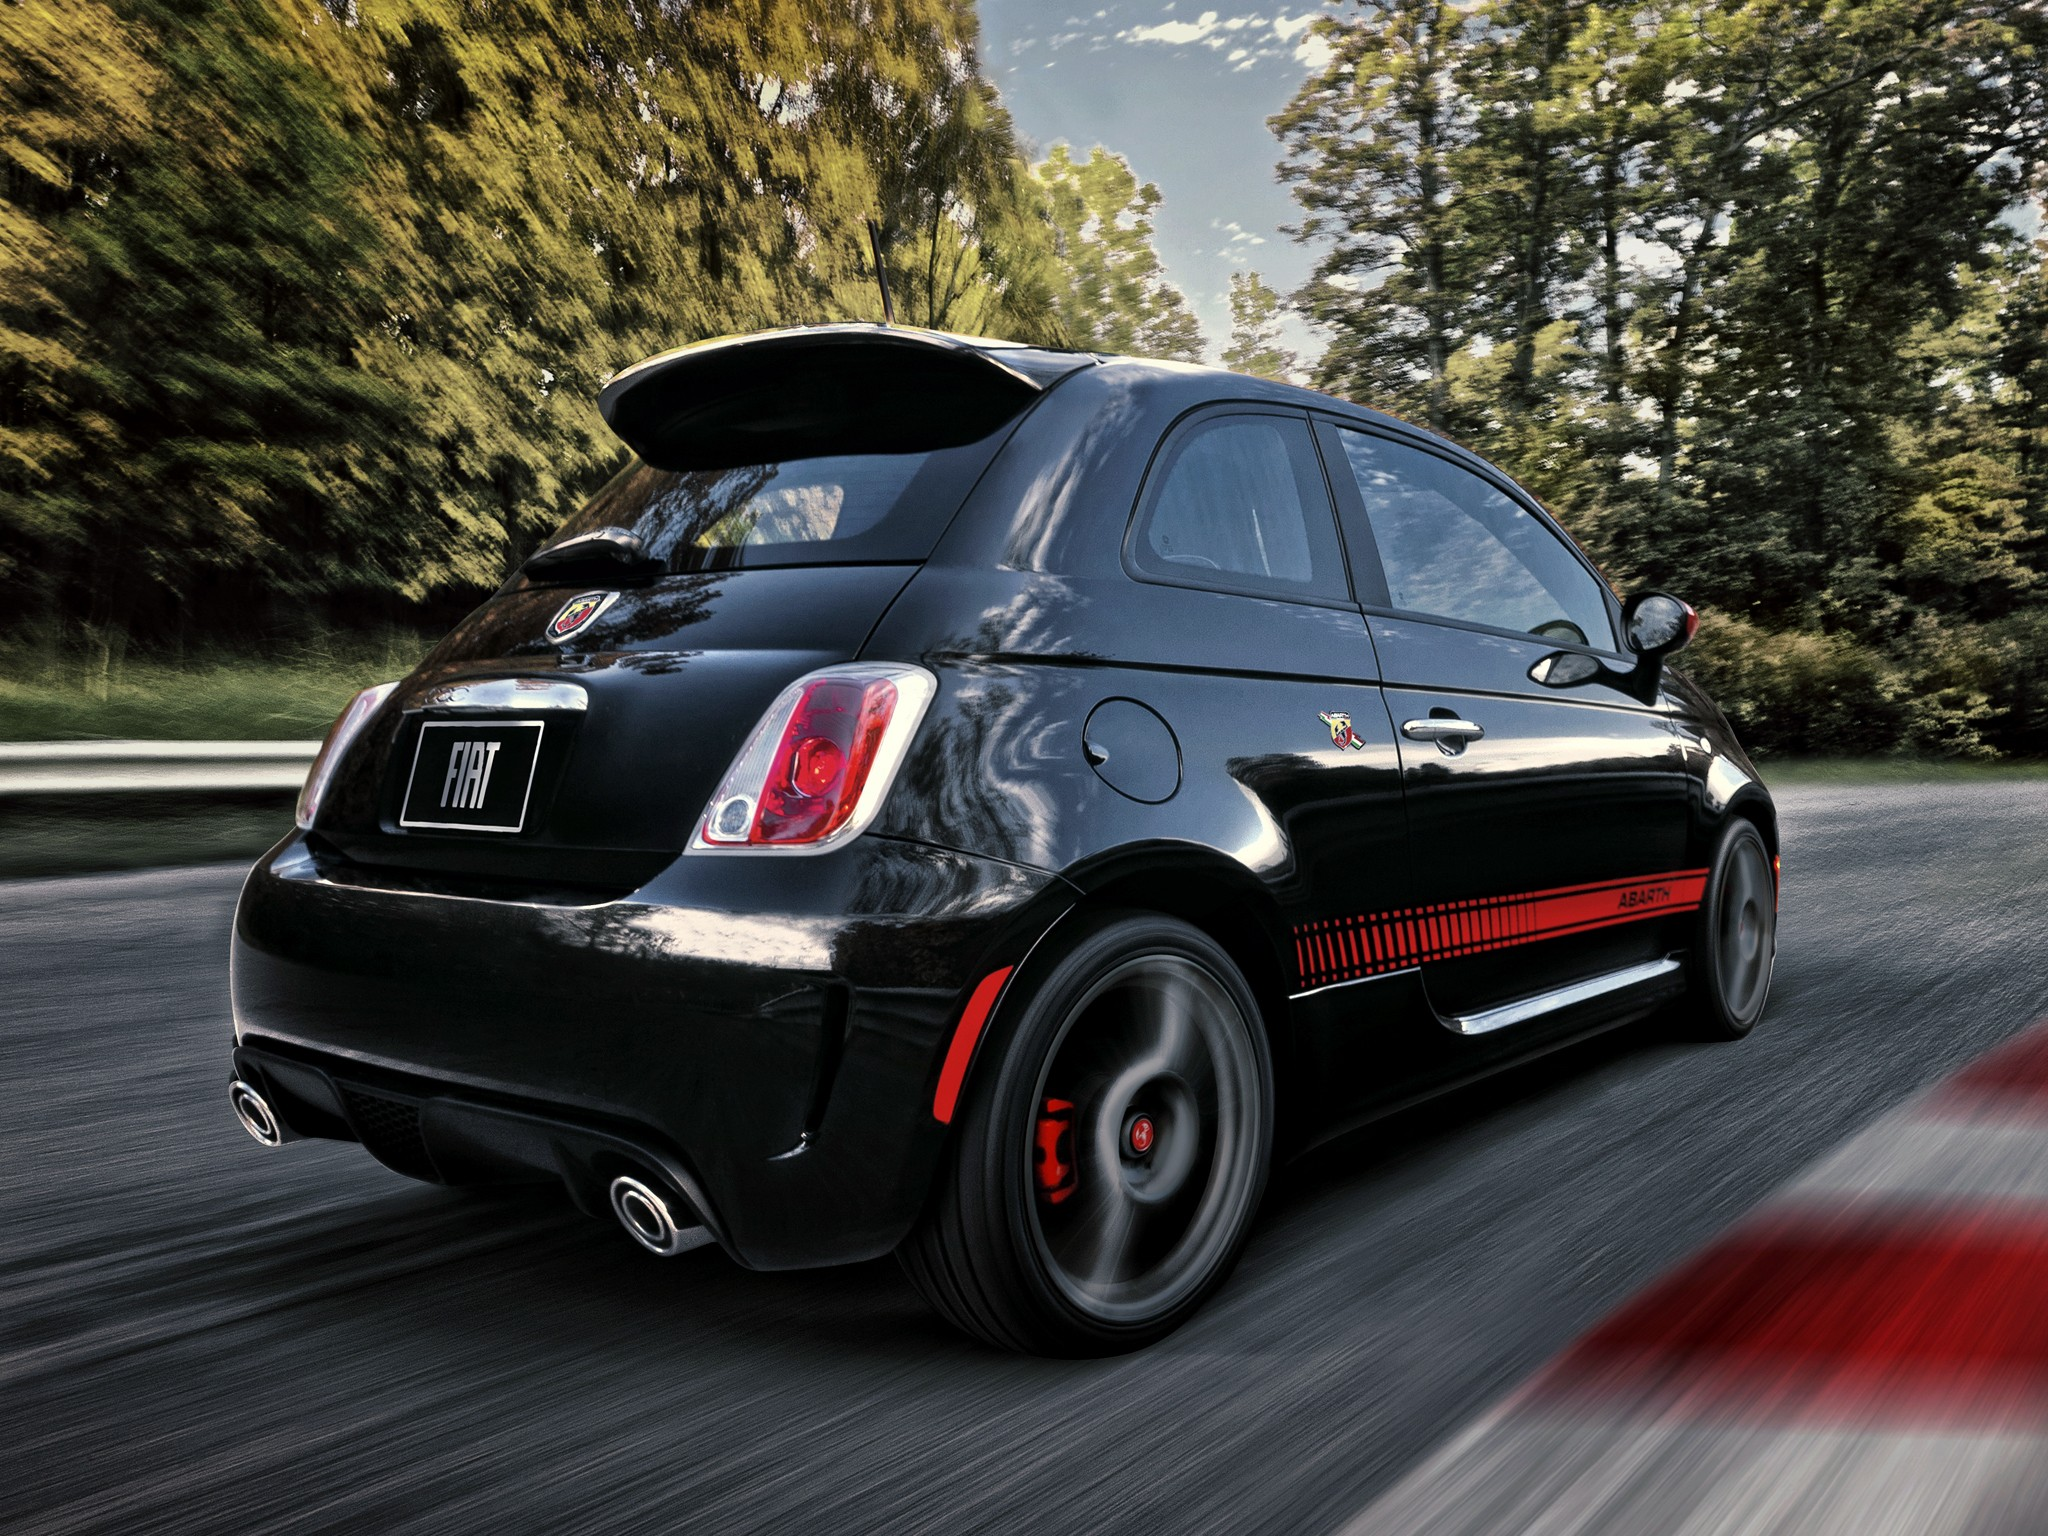 Fiat 500 Abarth 2008 likewise Fiat 500x Now On Sale In Australia From 28000 0710 in addition Fiat 500 Abarth 2008 moreover 60s Mini furthermore 500l Trekking. on fiat 500 safety